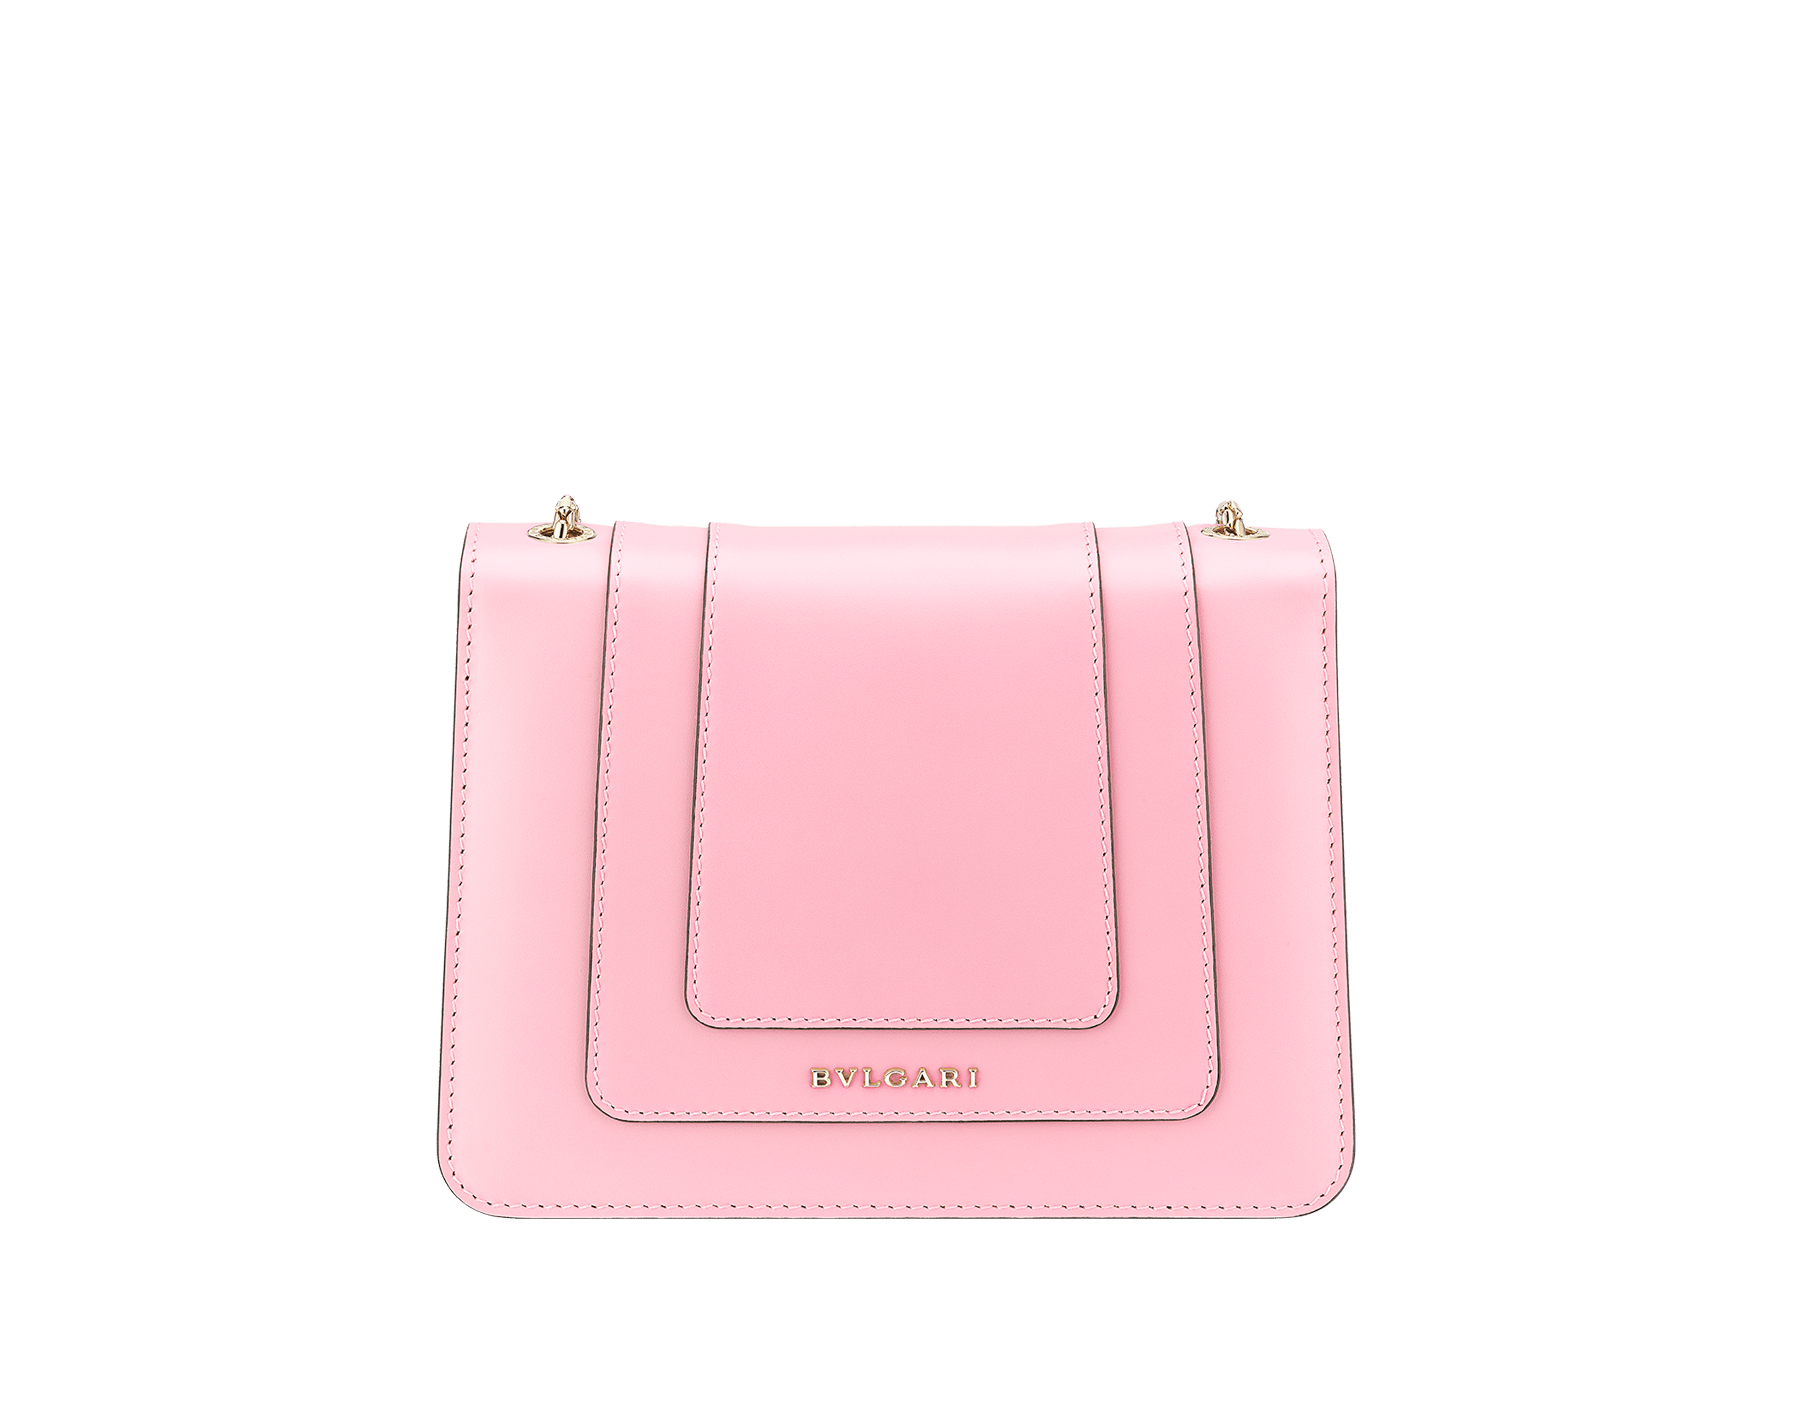 Serpenti Forever crossbody bag in sea star coral smooth calf leather. Snakehead closure in light gold plated brass decorated with black and white enamel, and green malachite eyes. 422-CLb image 3